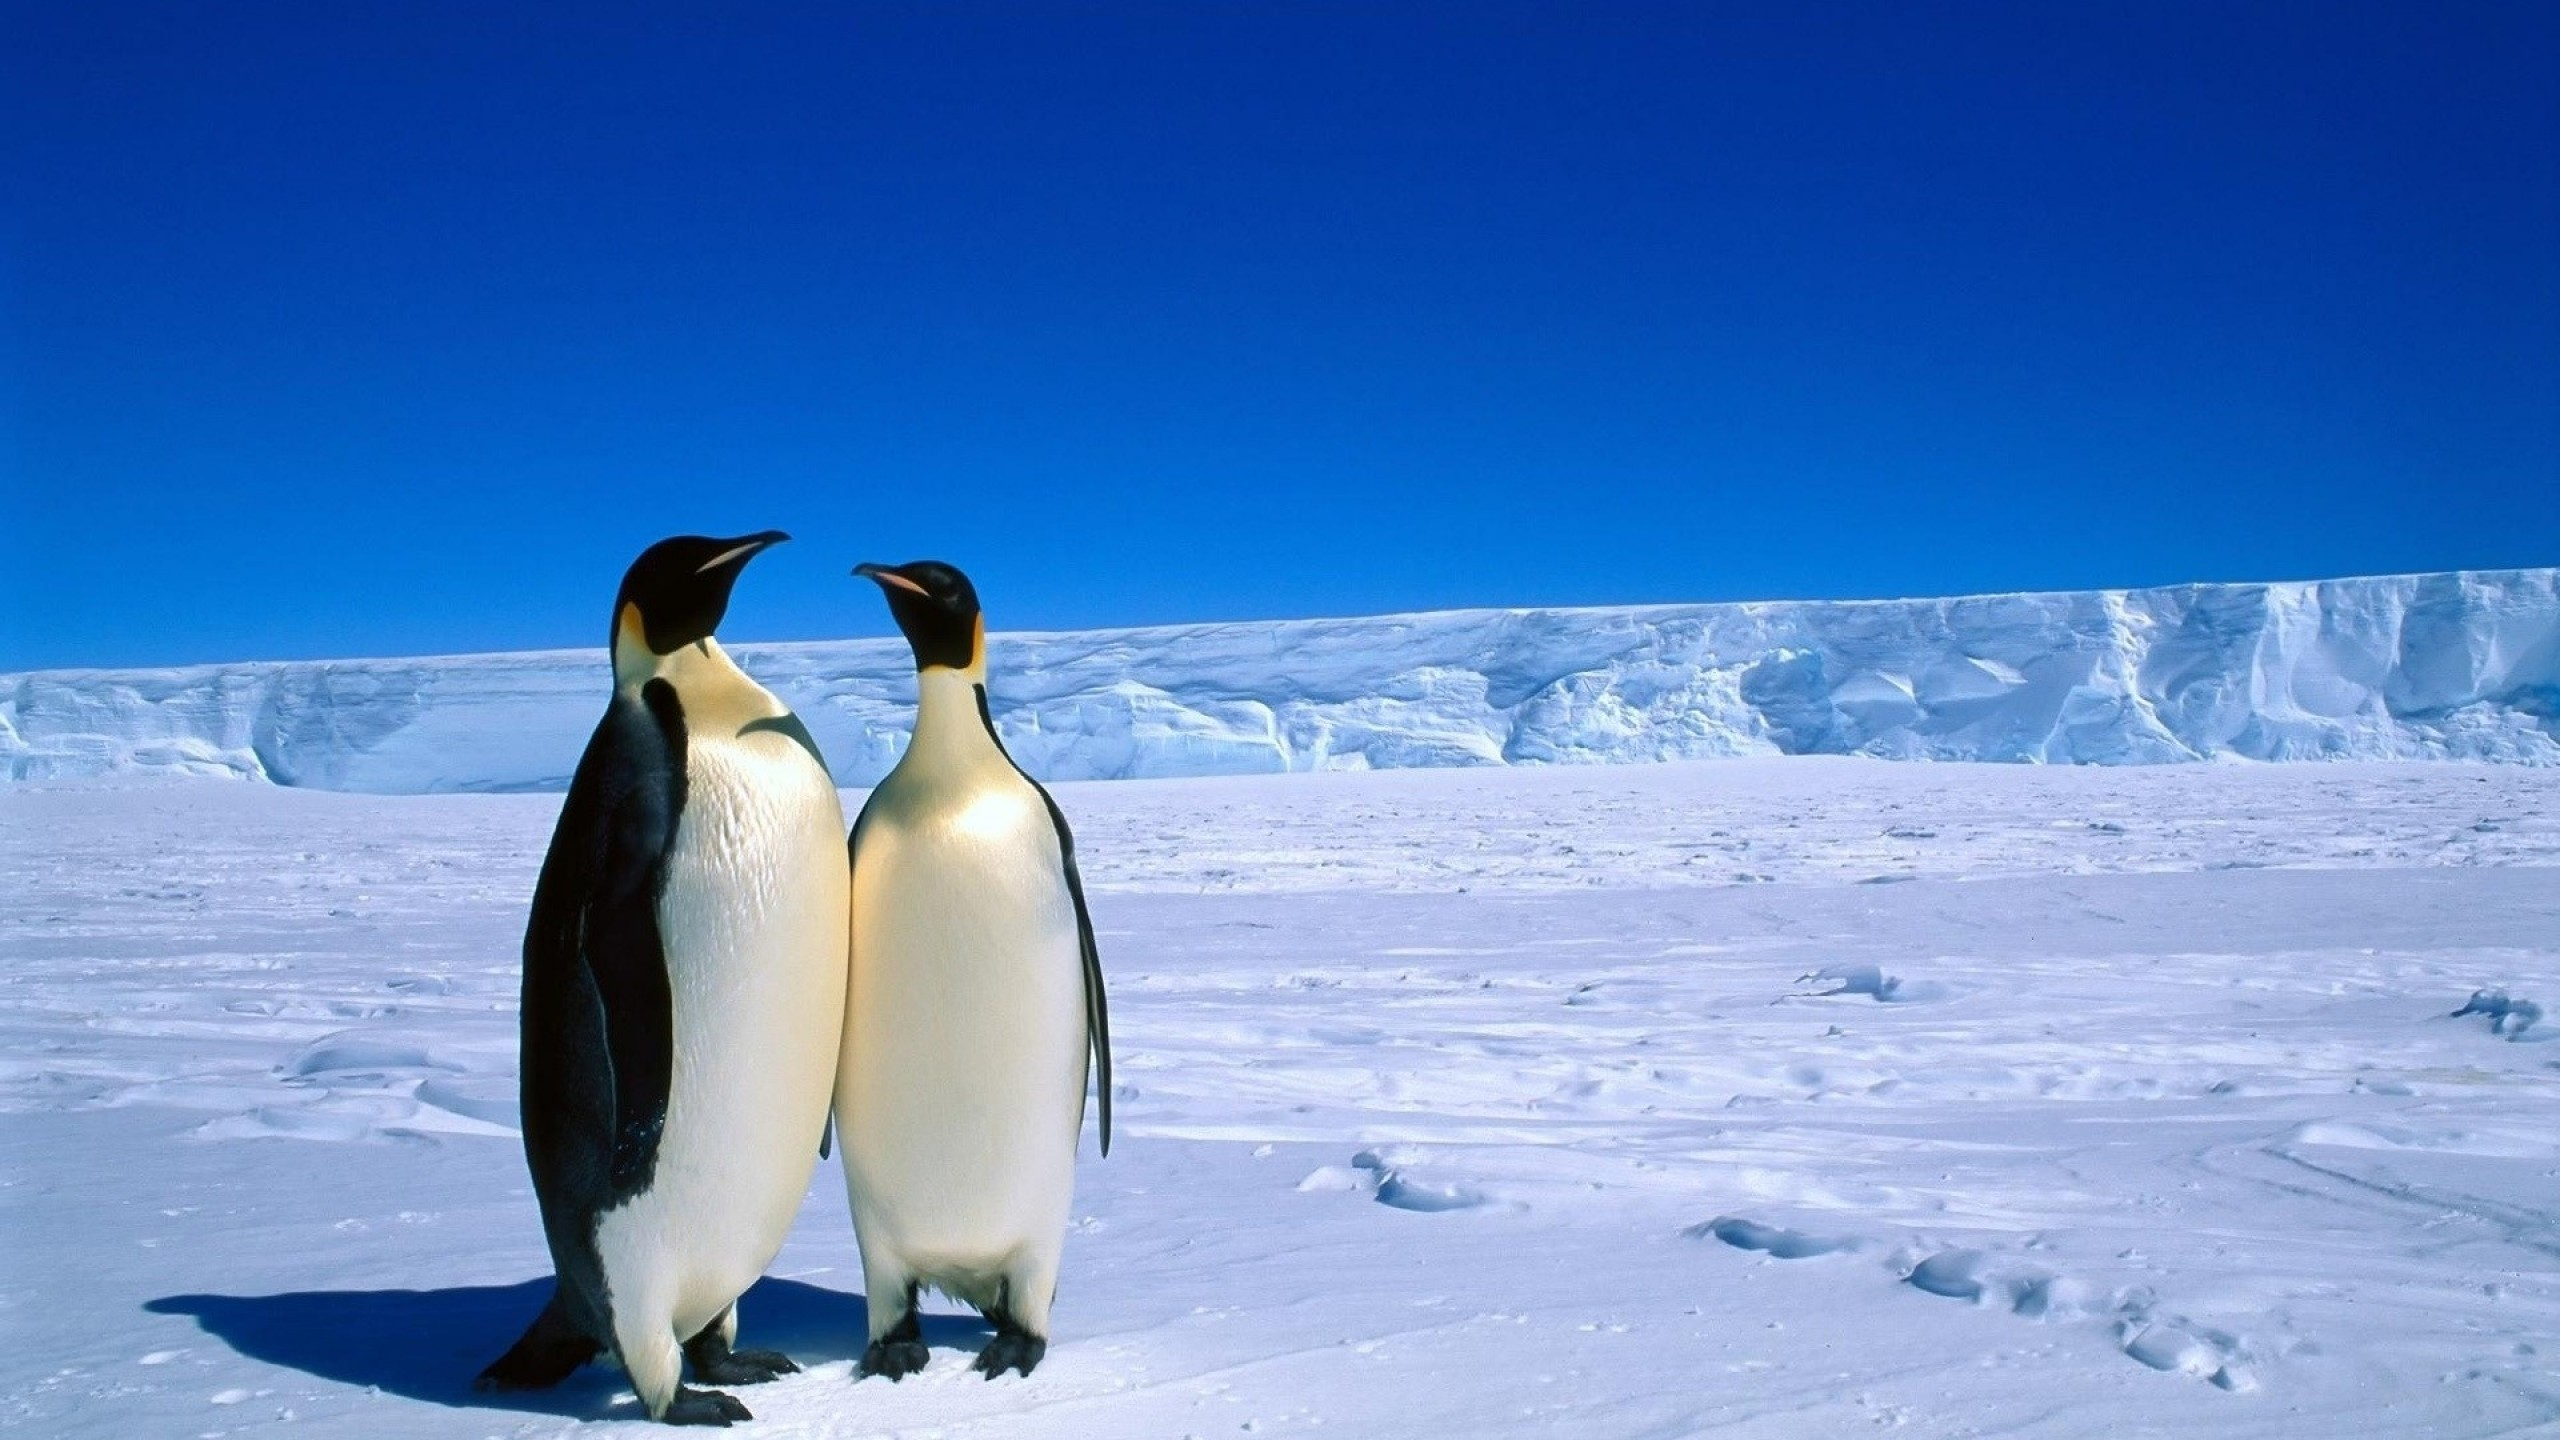 Gif clipart images of antarctica.